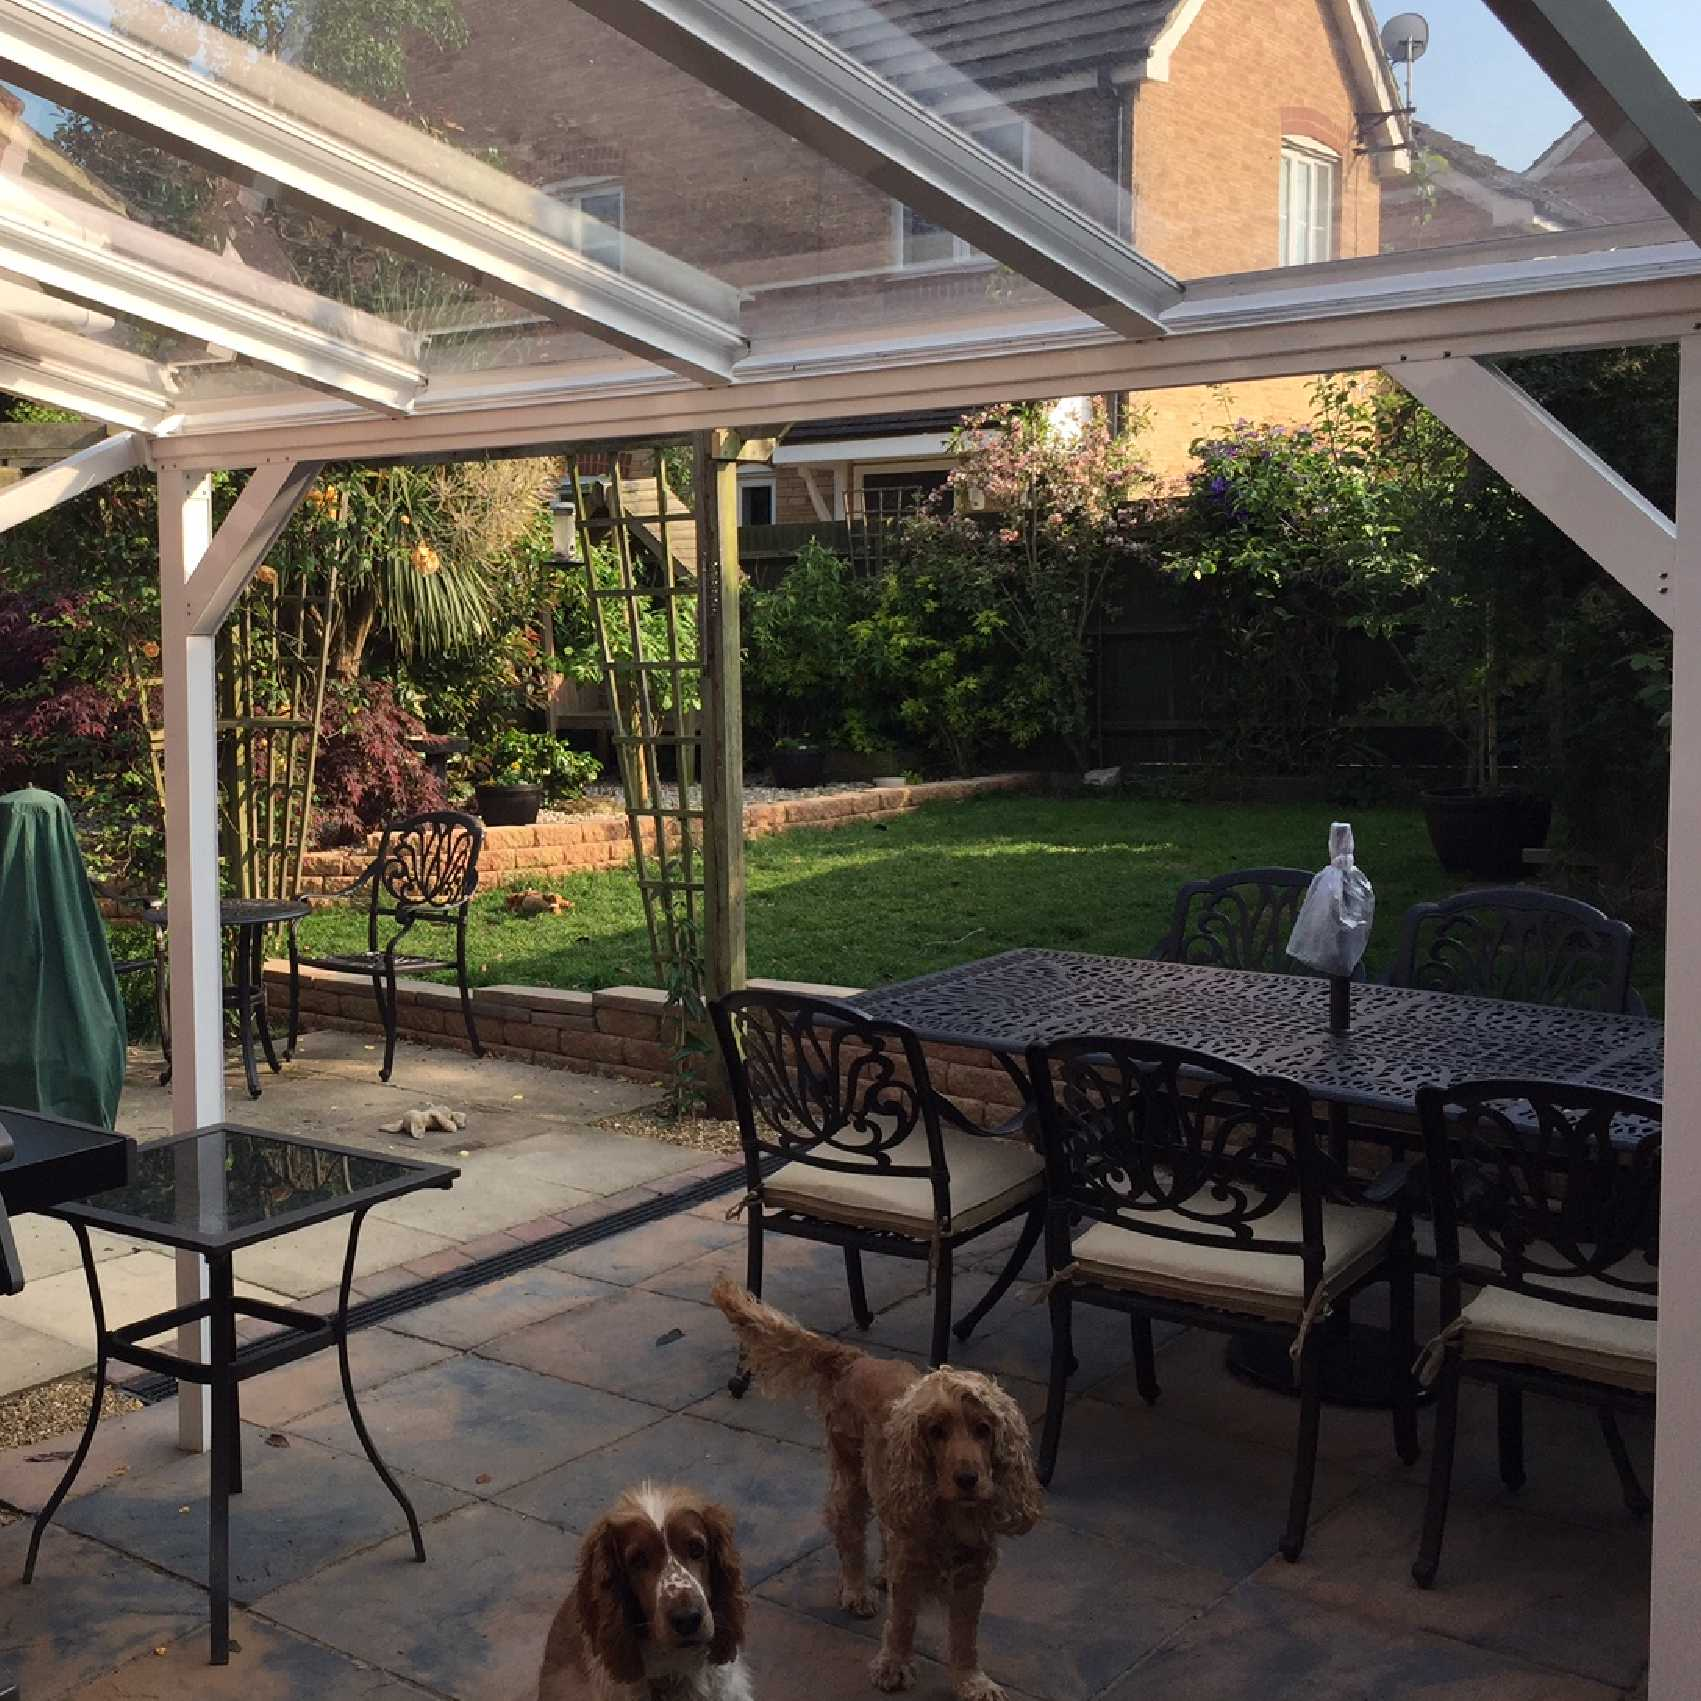 Affordable Omega Smart Lean-To Canopy UNGLAZED for 6mm Glazing - 5.2m (W) x 4.0m (P), (3) Supporting Posts